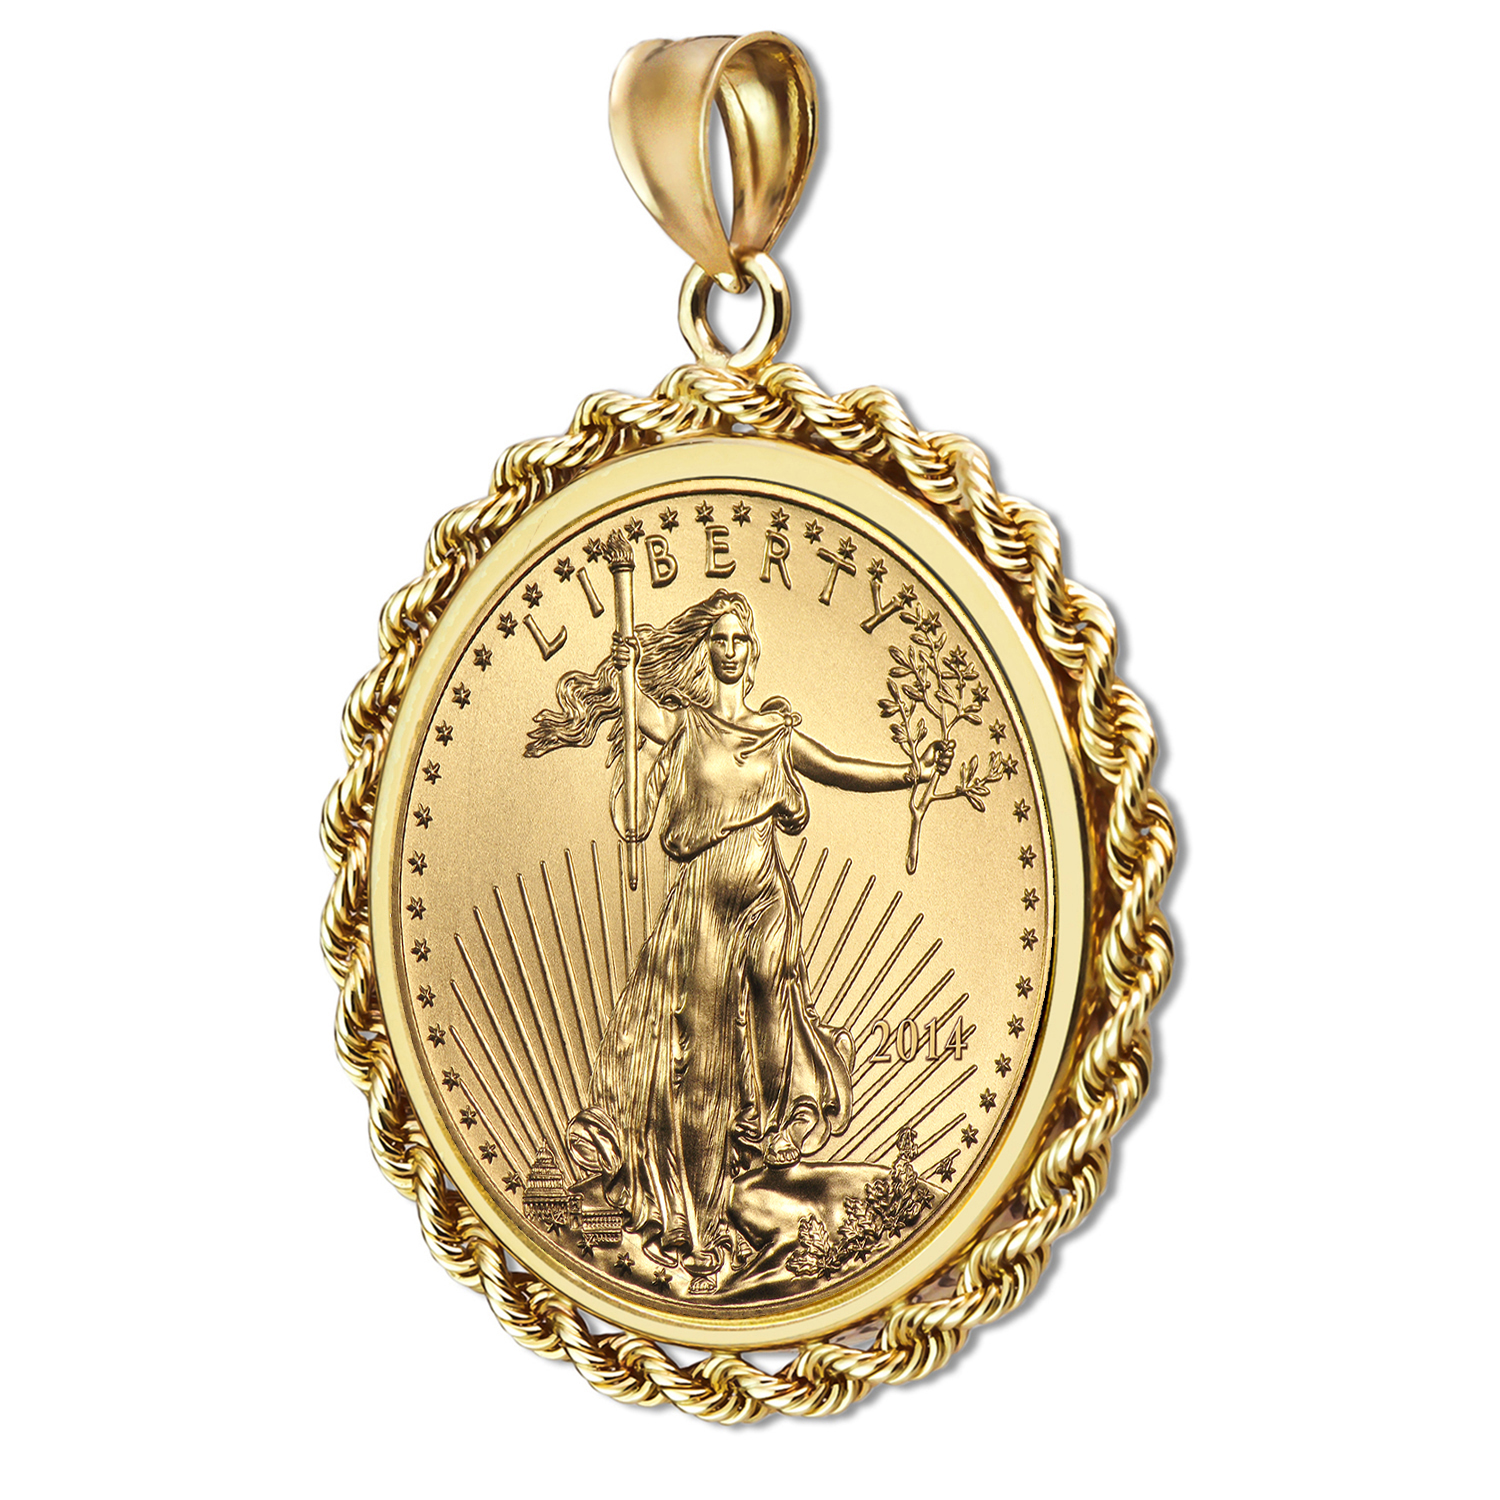 2014 1/4 oz Gold Eagle Pendant (Rope-Prong Bezel)